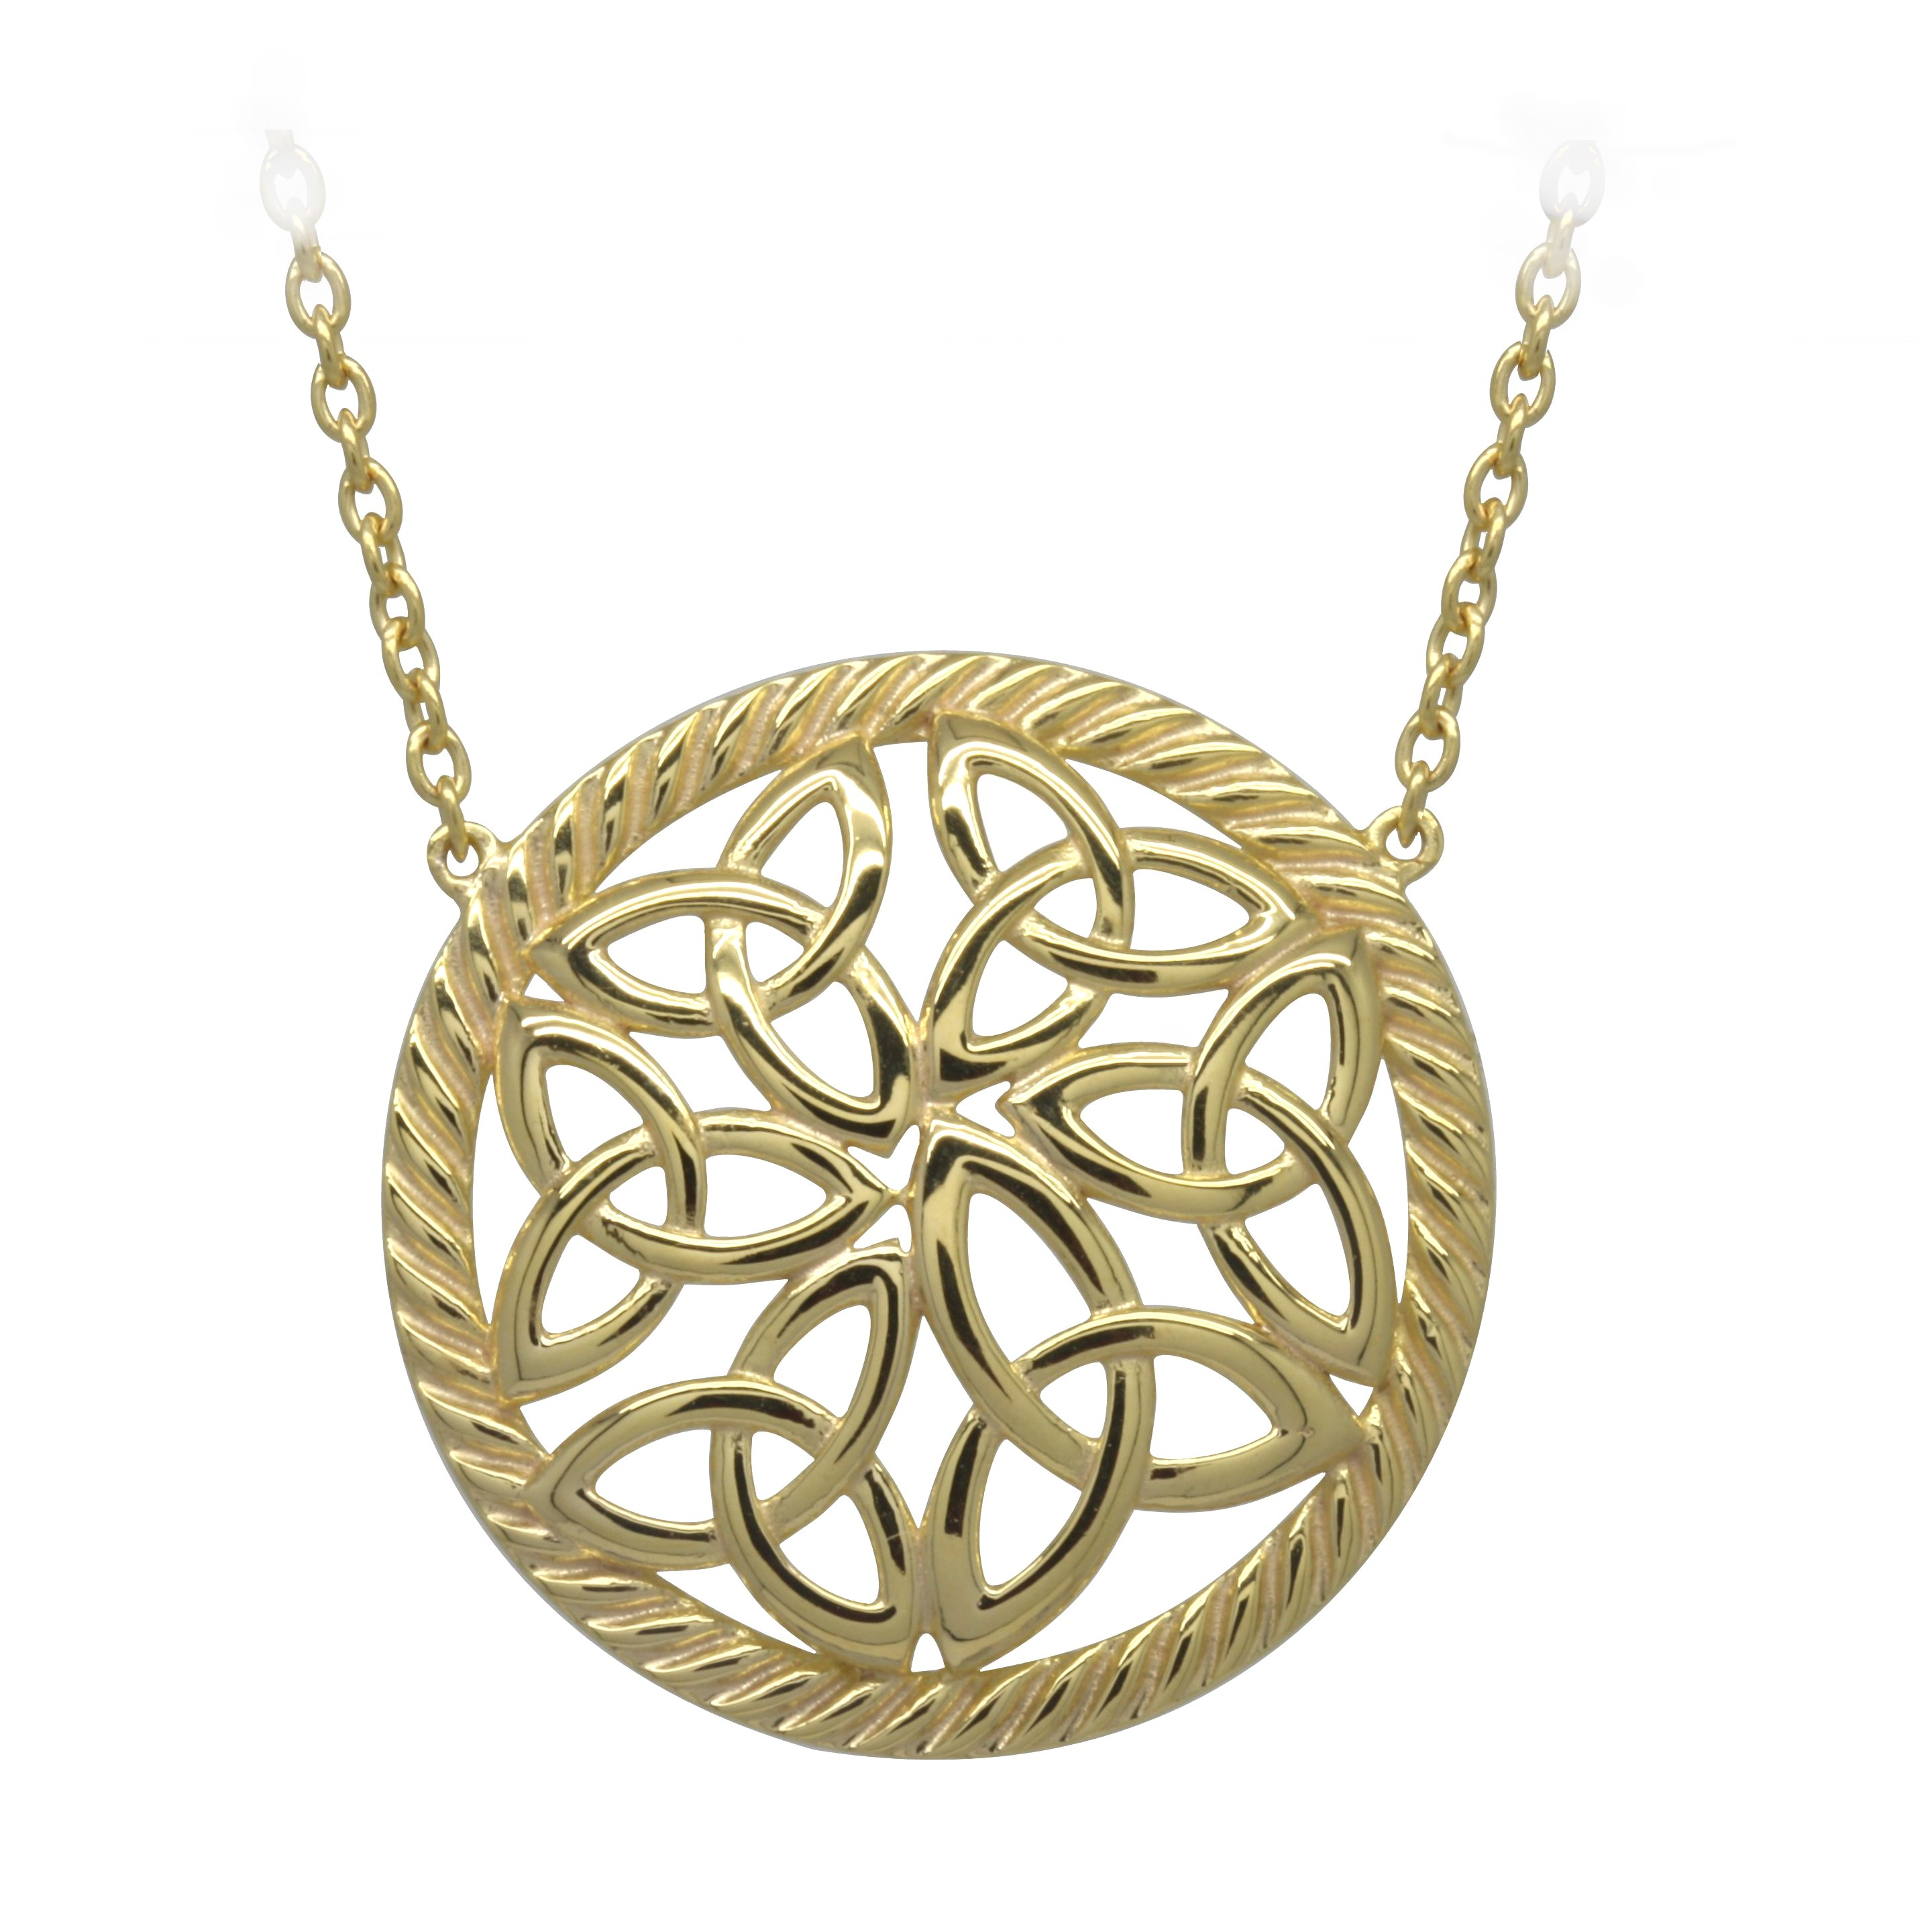 Irish Necklace | Gold Plated Sterling Silver Trinity Knot Round Pendant